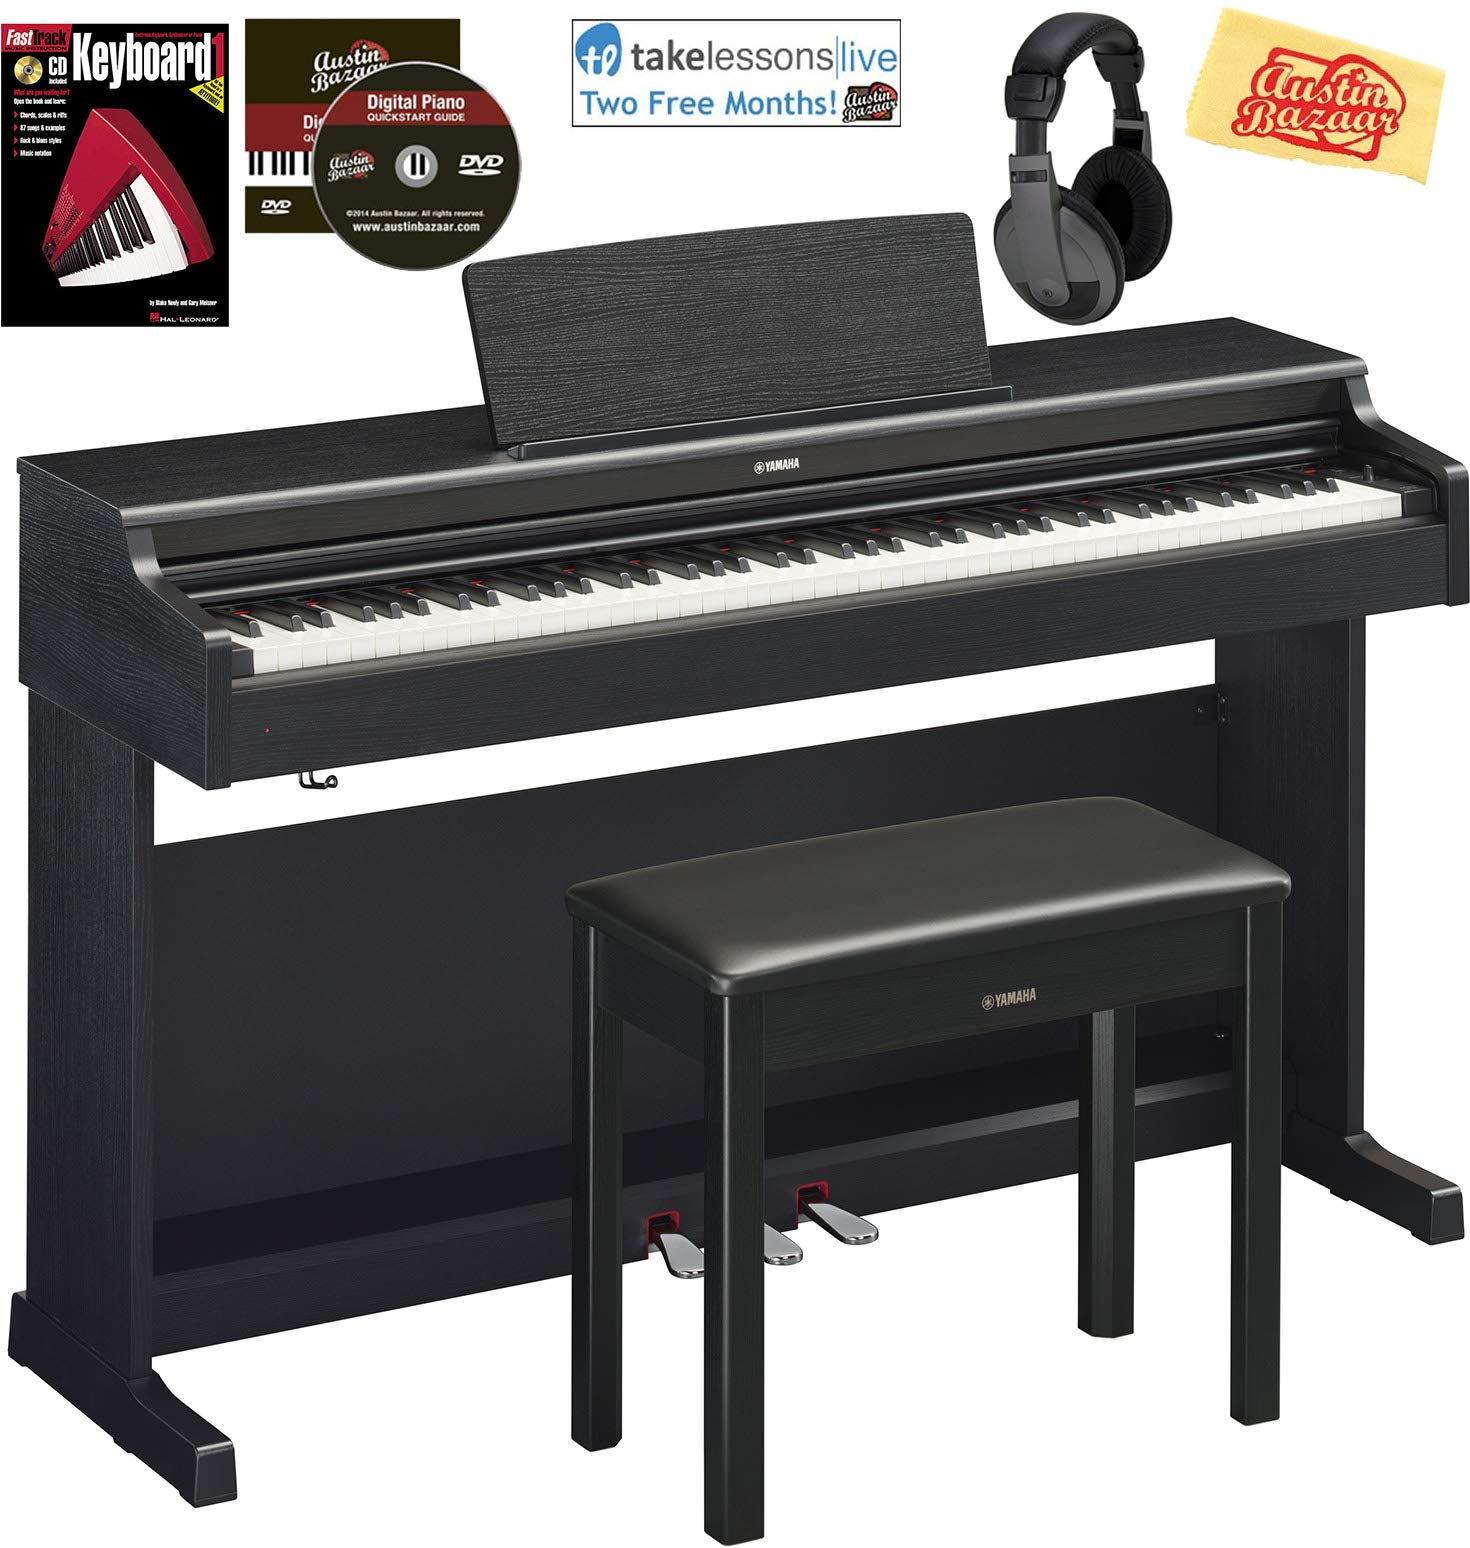 Yamaha Arius YDP-164 Traditional Console Digital Piano - Black Bundle with Furniture Bench, Headphones, Fast Track Music Book, Online Lessons, Austin Bazaar Instructional DVD, and Polishing Cloth by Yamaha